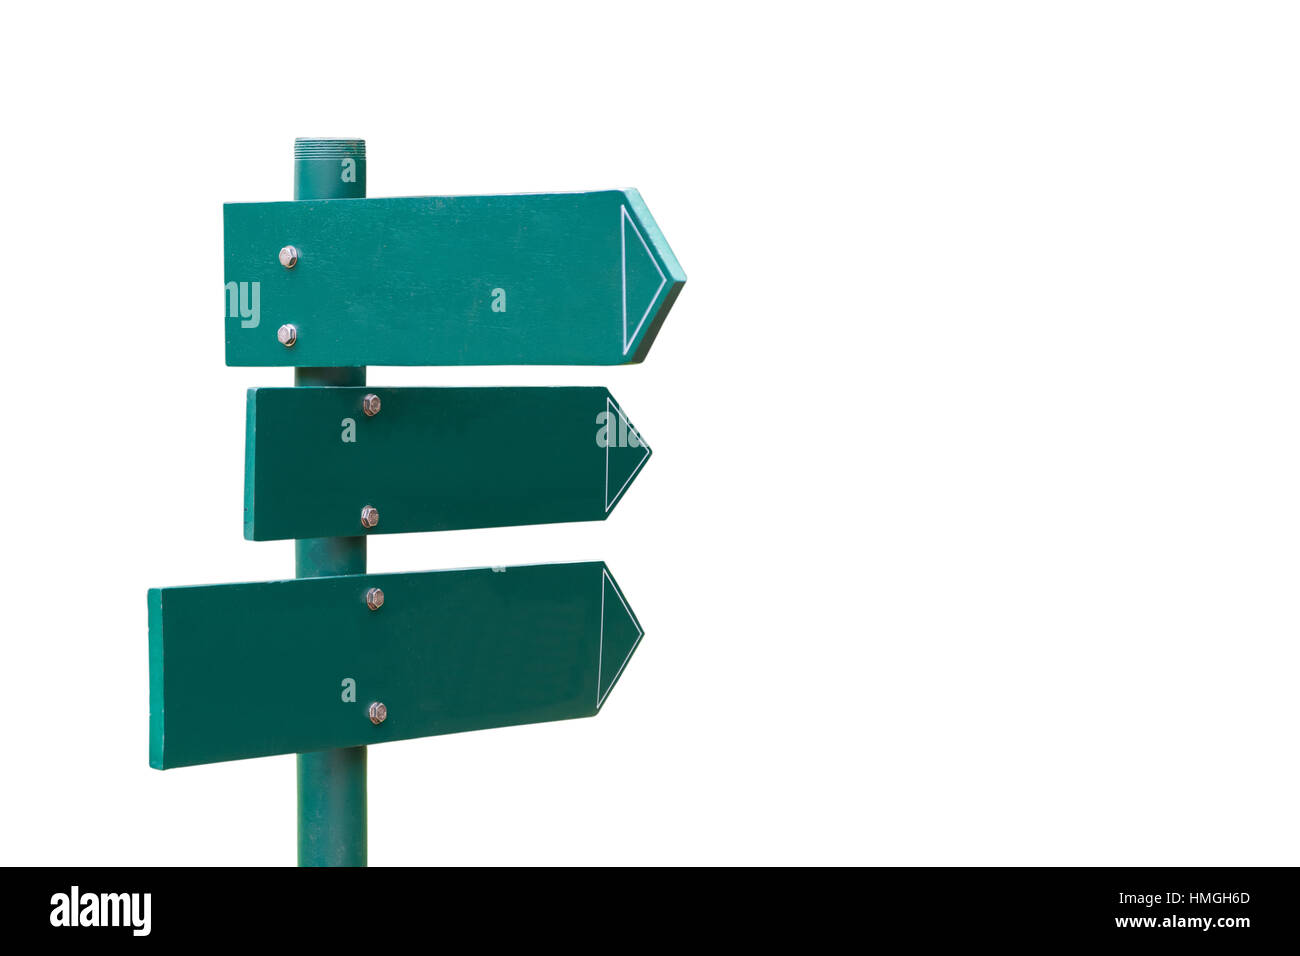 Green direction signs isolated on white background. - Stock Image